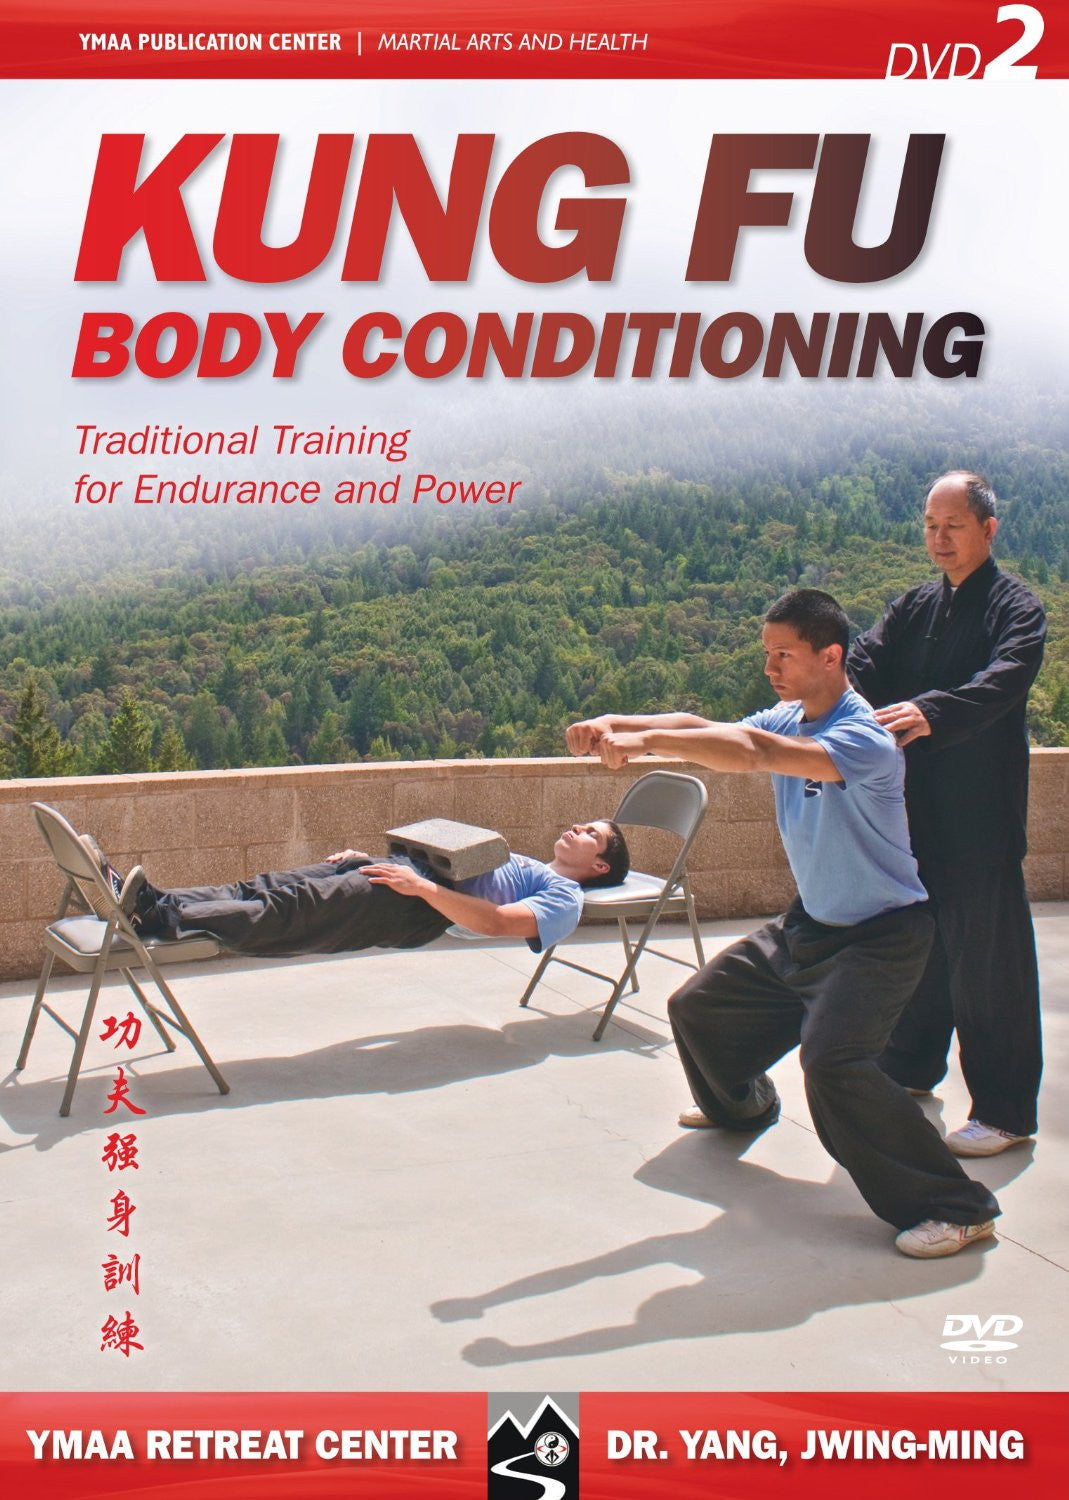 Kung Fu Body Conditioning 2 DVD by Dr. Yang, Jwing-Ming - Budovideos